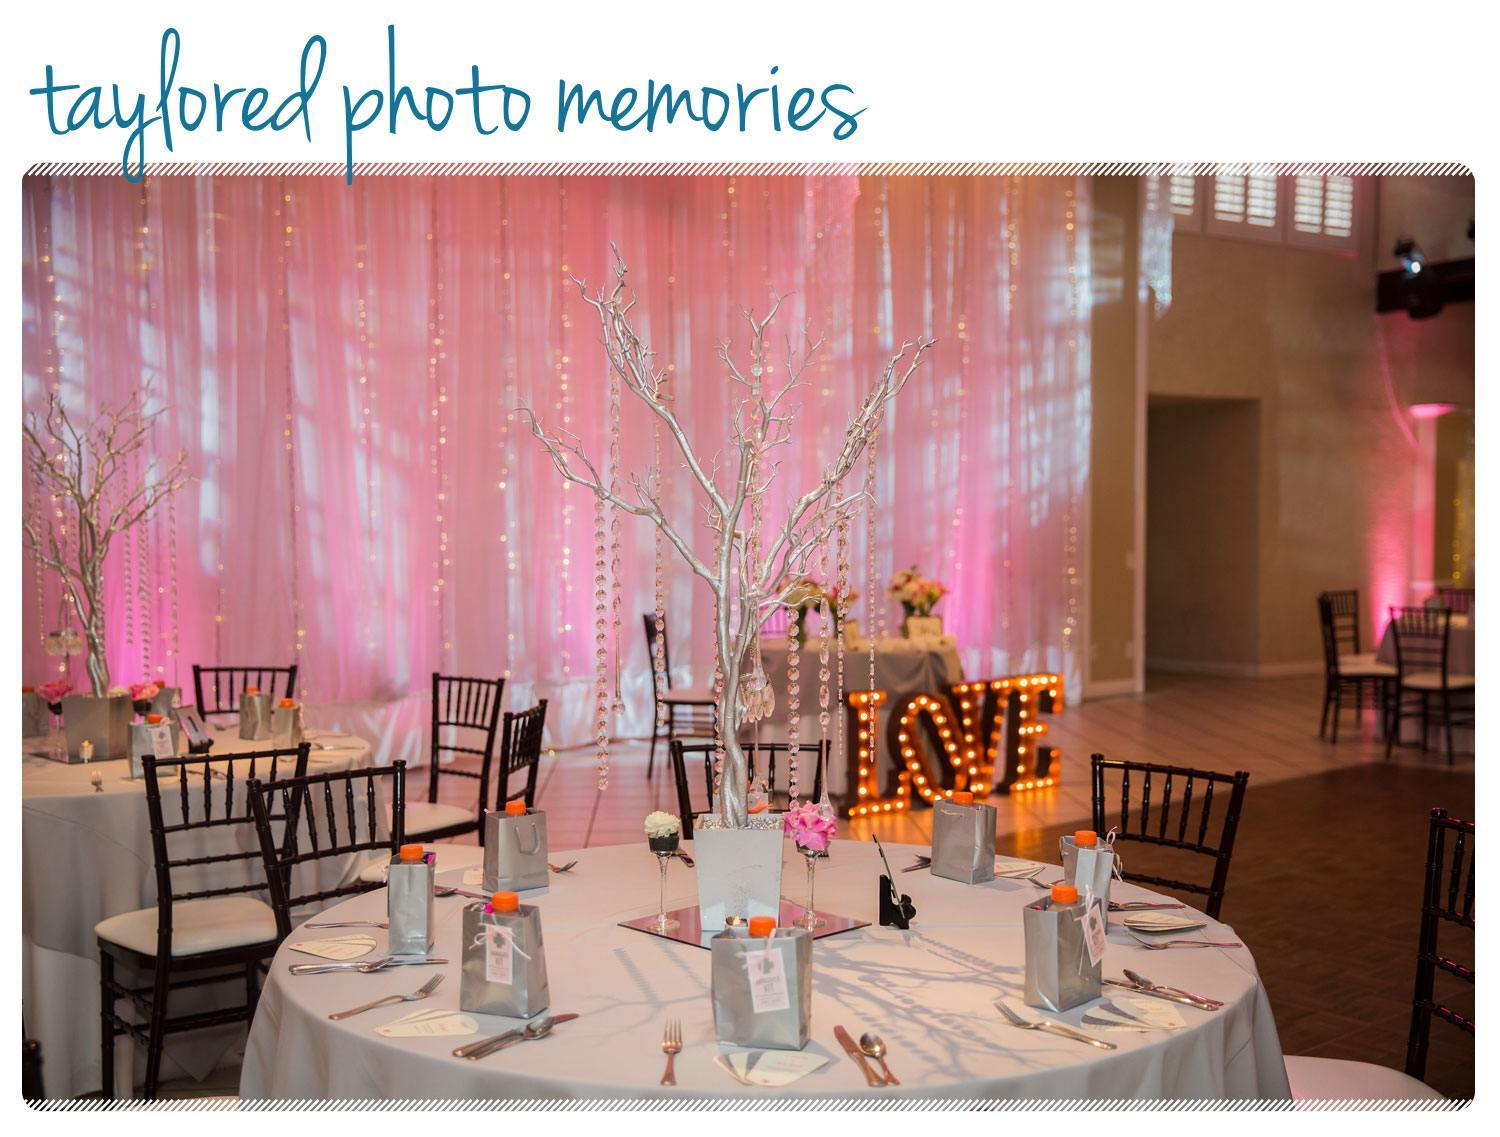 Intimate Wedding Ceremony And Reception At The Grove Las Vegas Photographer